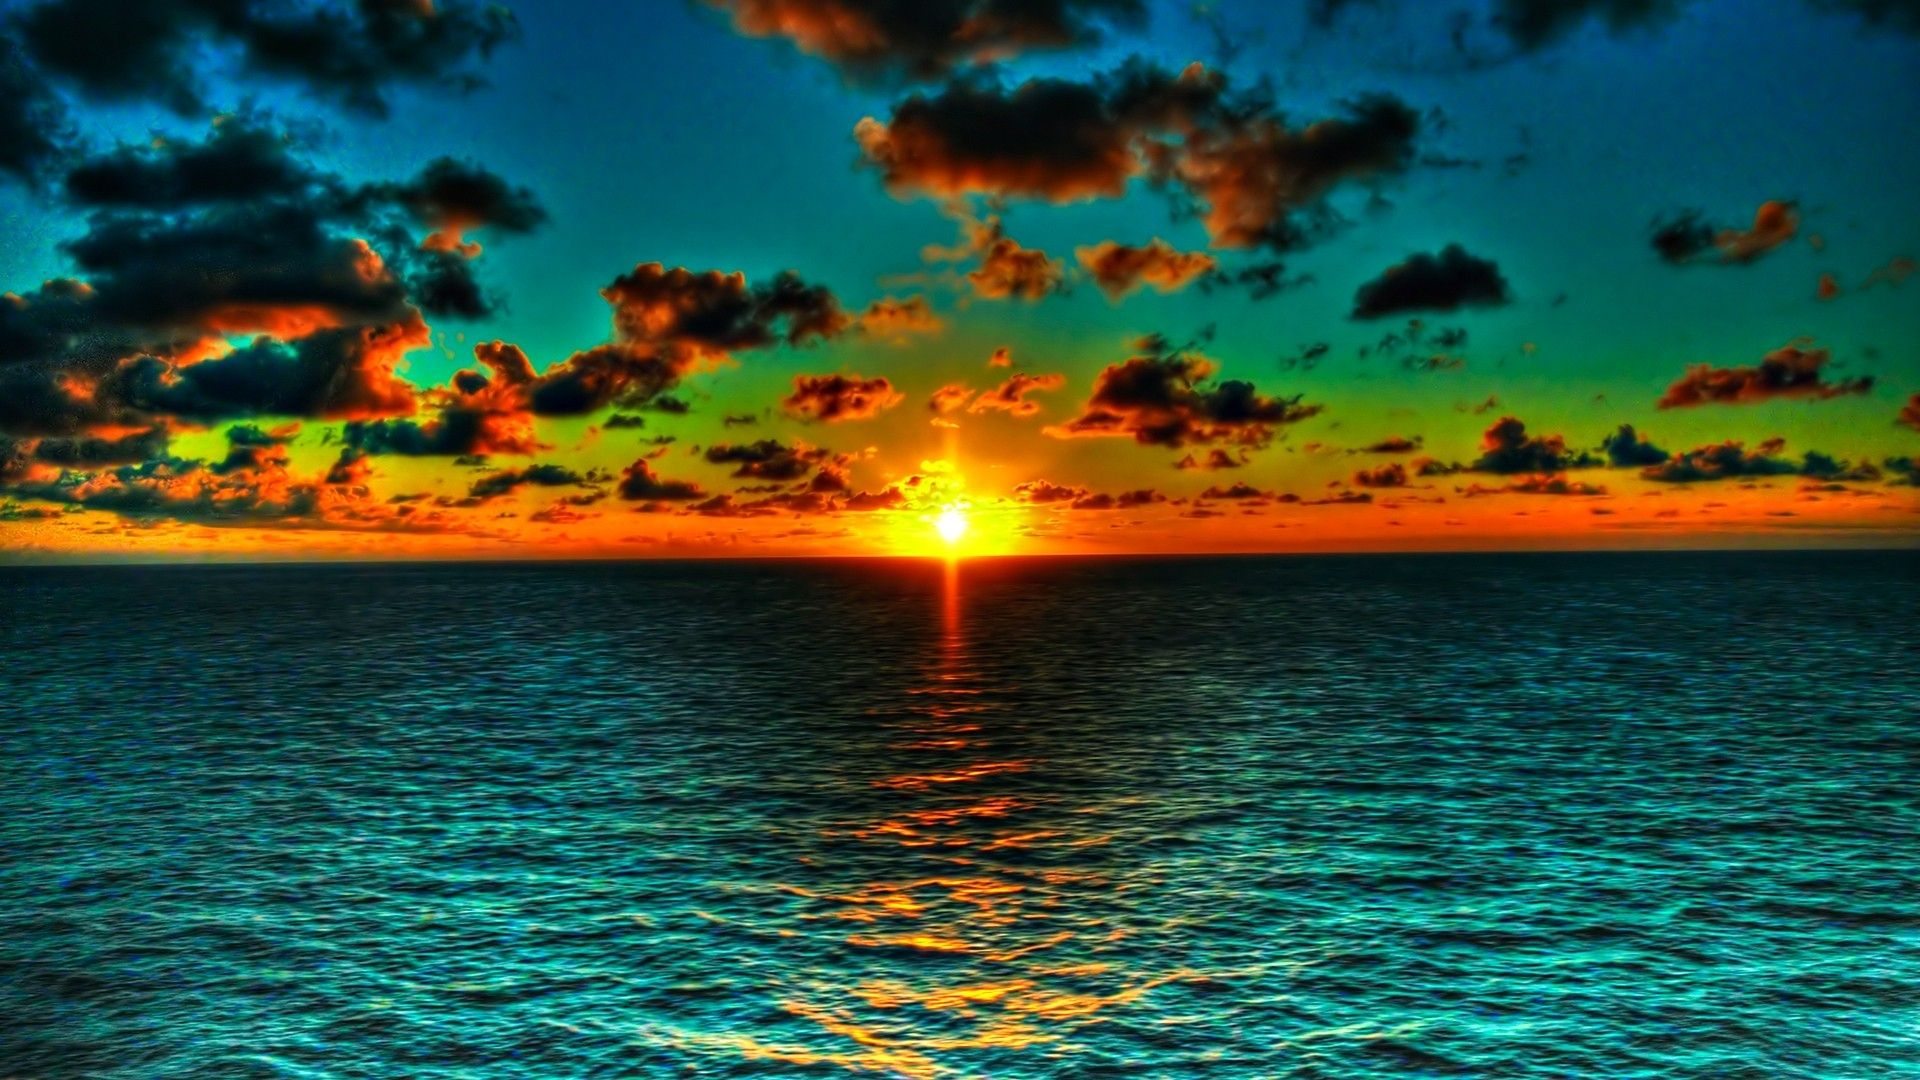 Beautiful ocean sunsets hd background wallpaper 16 hd wallpapers beautiful ocean sunsets hd background wallpaper 16 hd wallpapers voltagebd Image collections